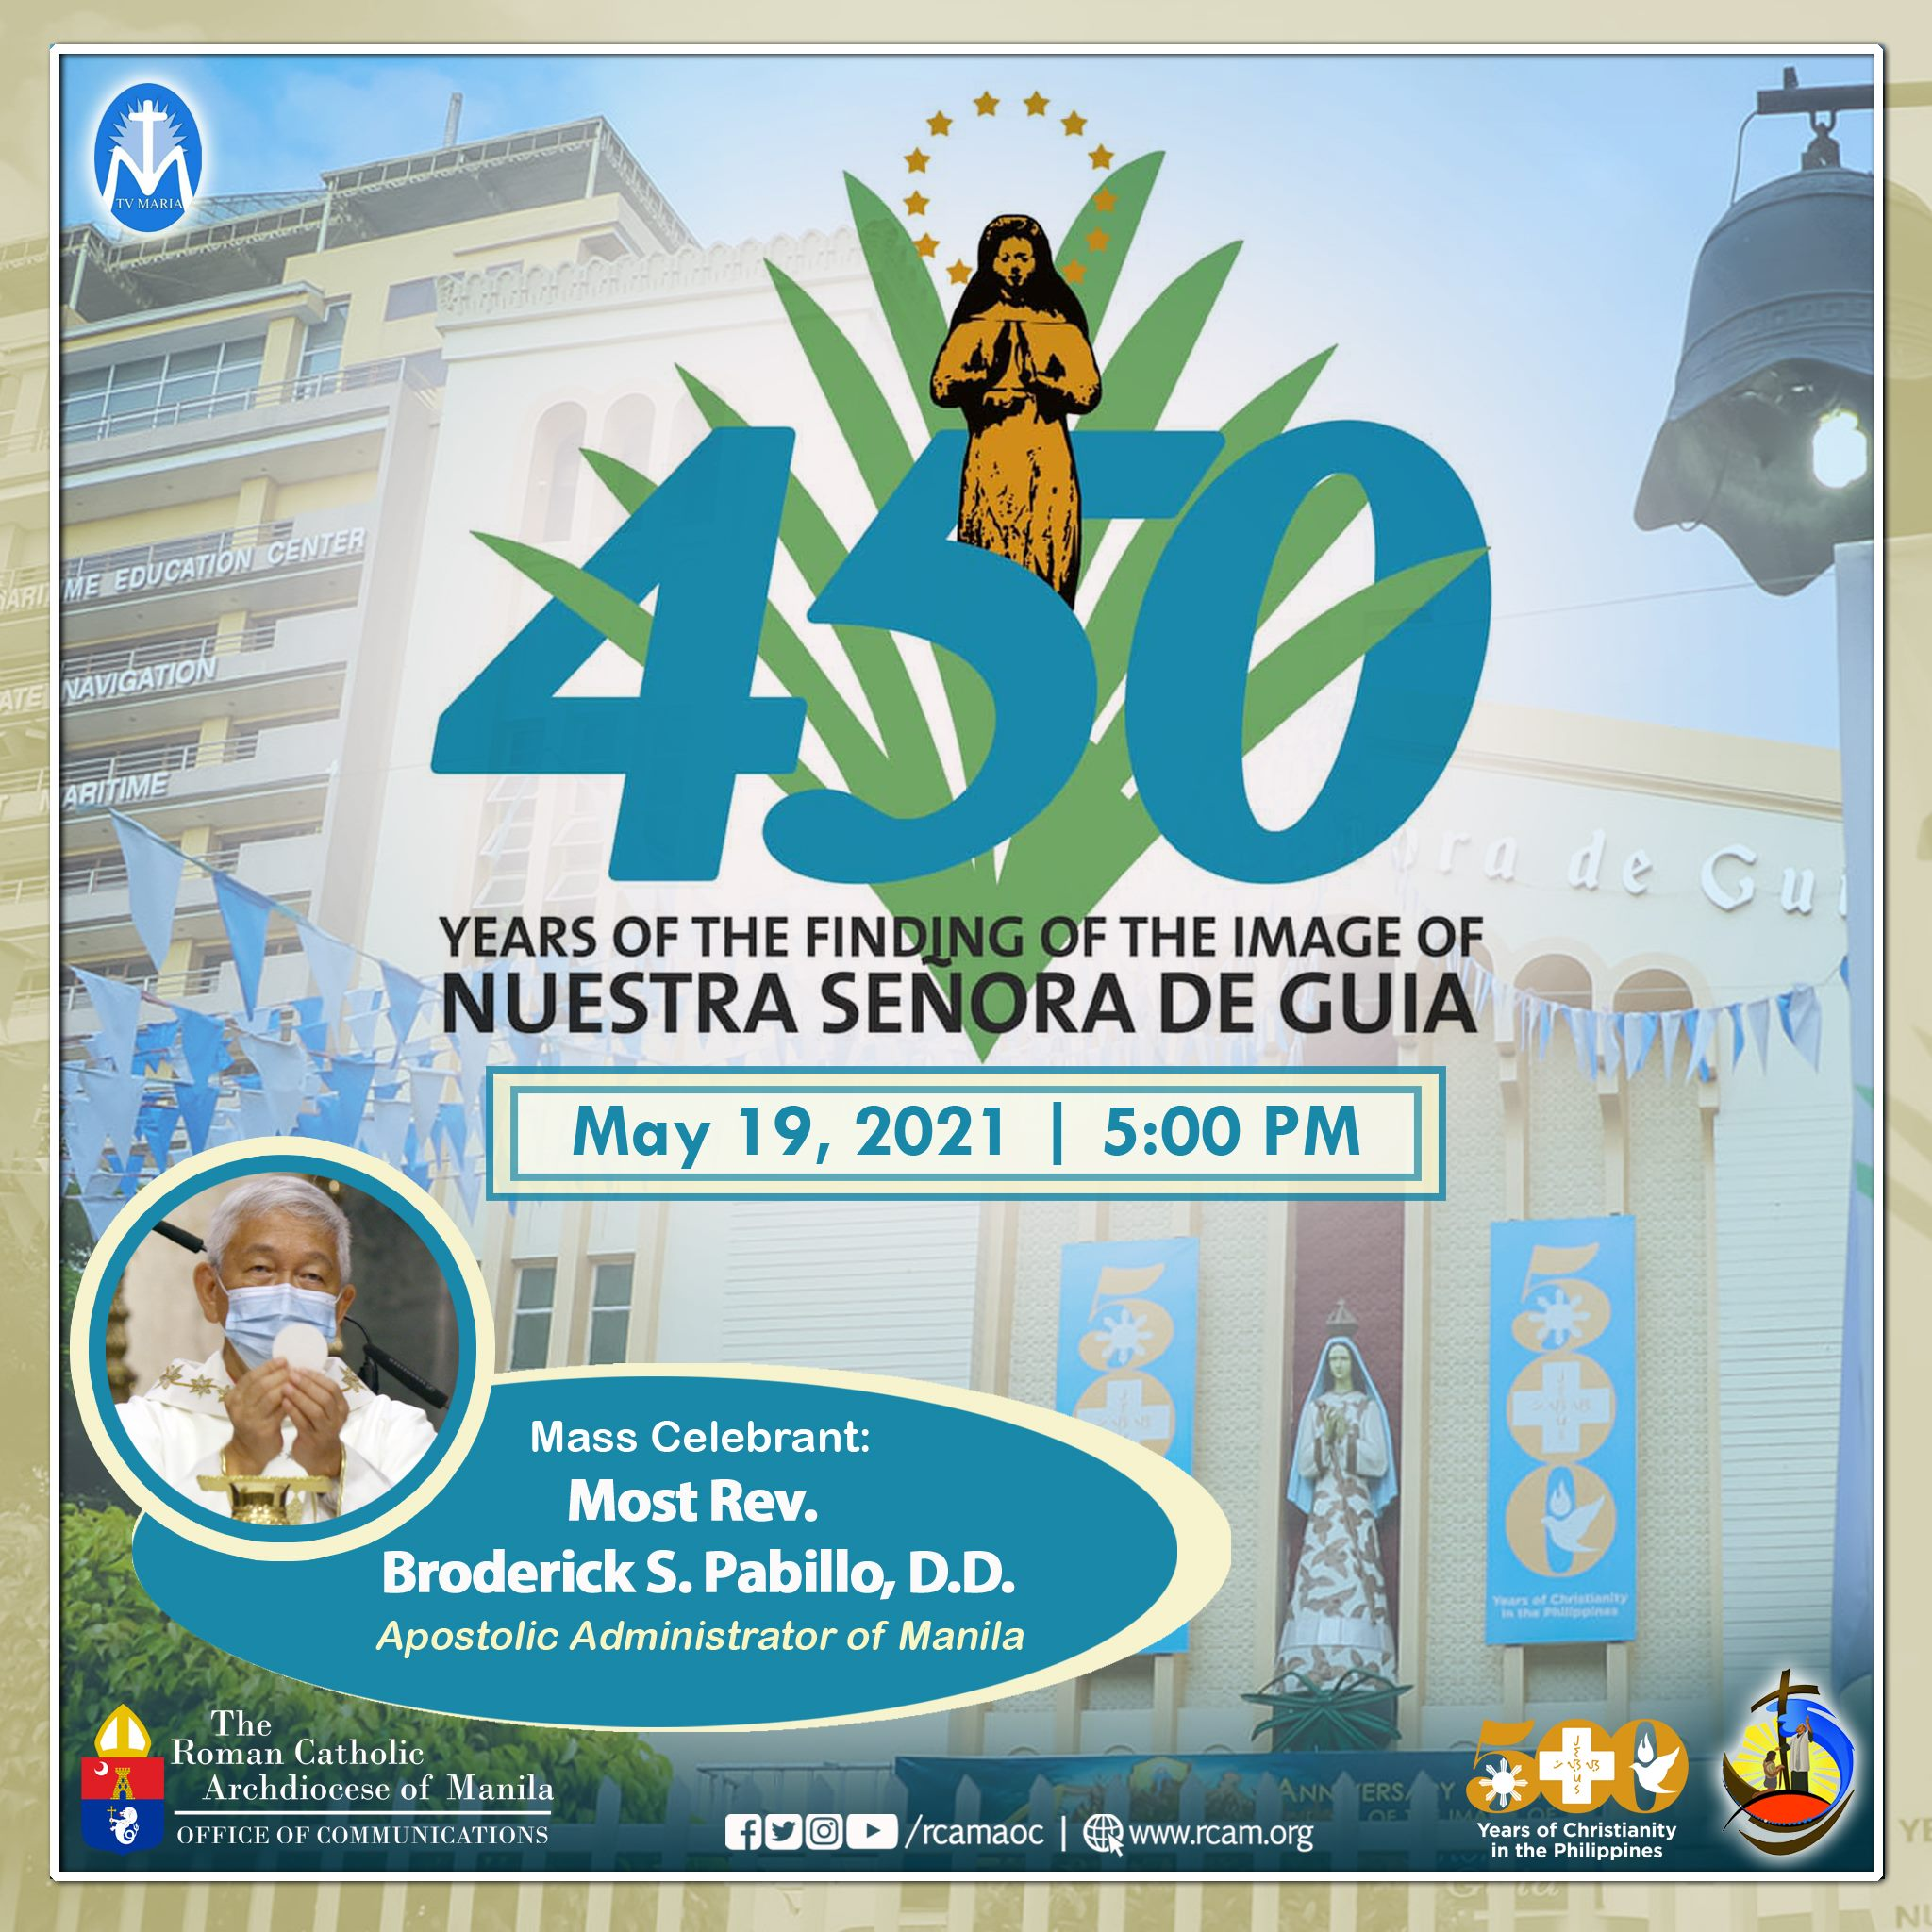 450th anniversary of the finding of the image of Nuestra Senora De Guia